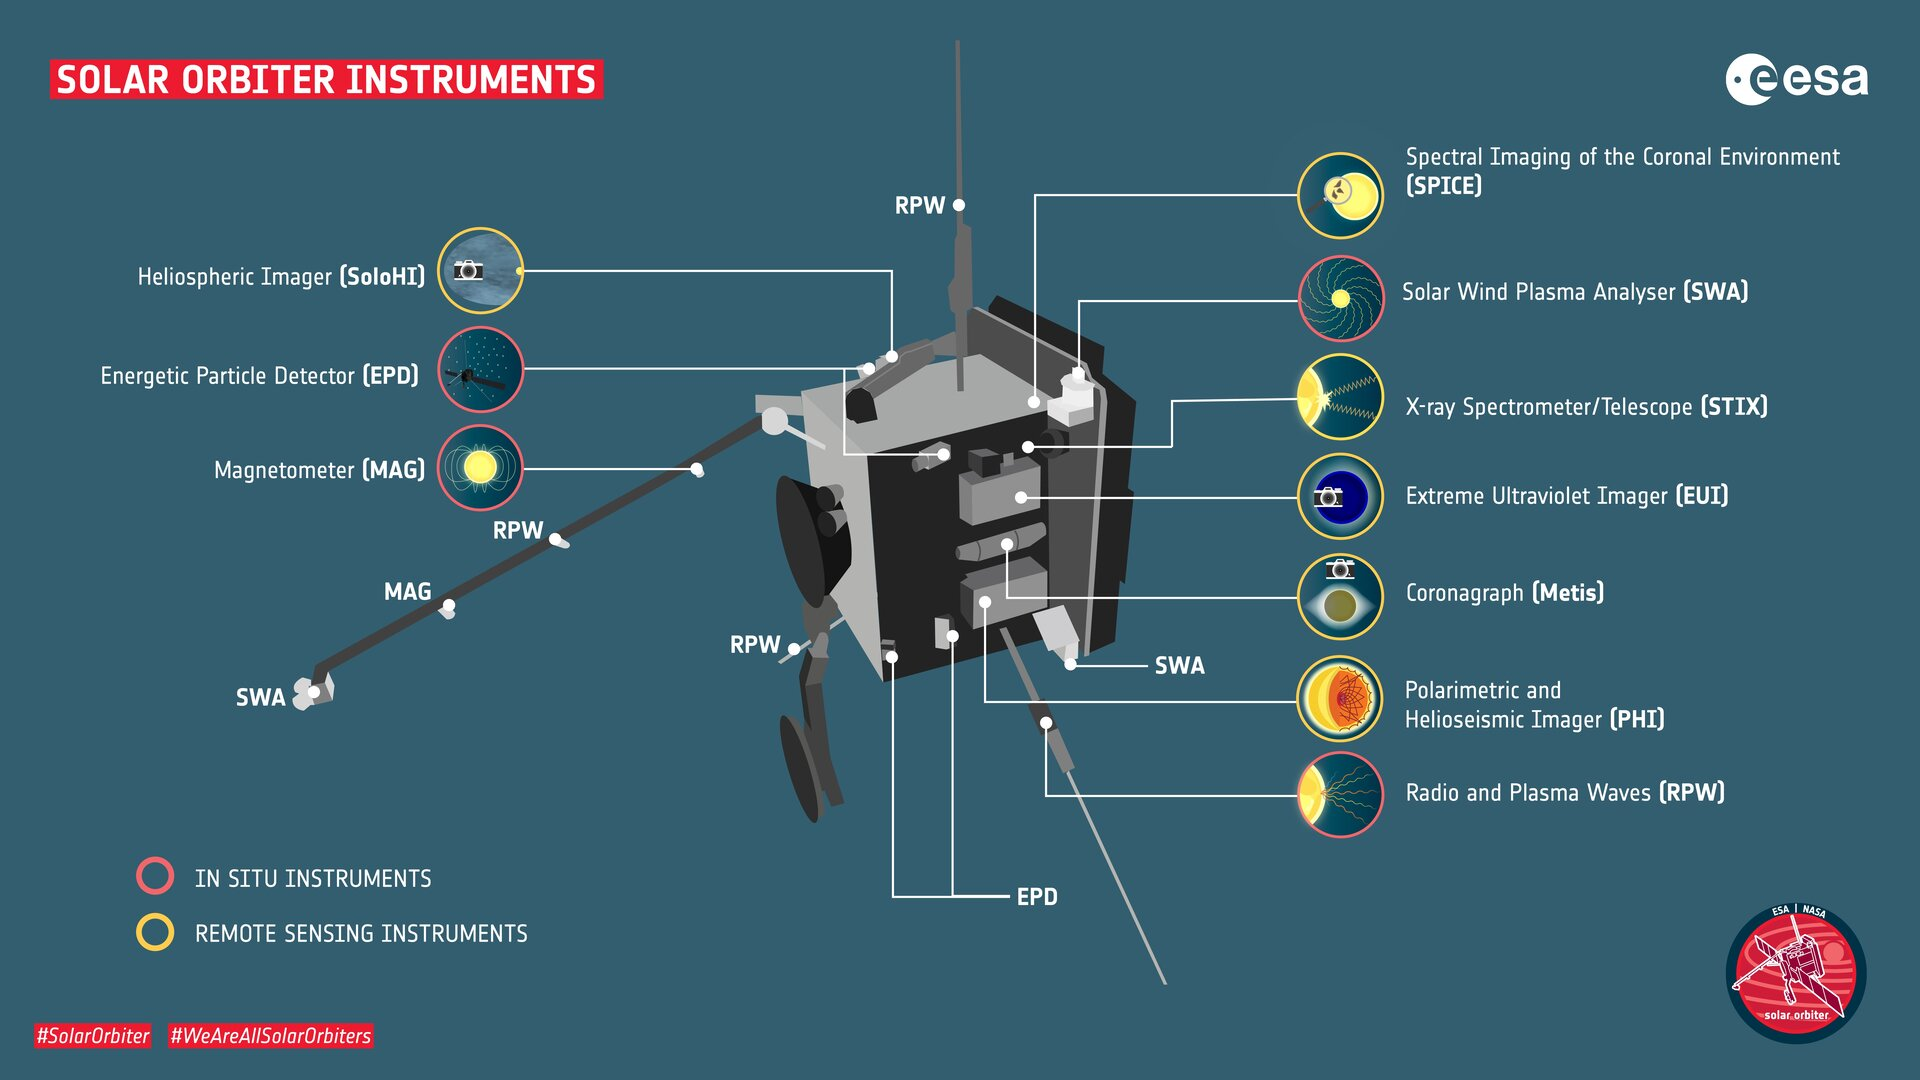 Spacecraft instruments